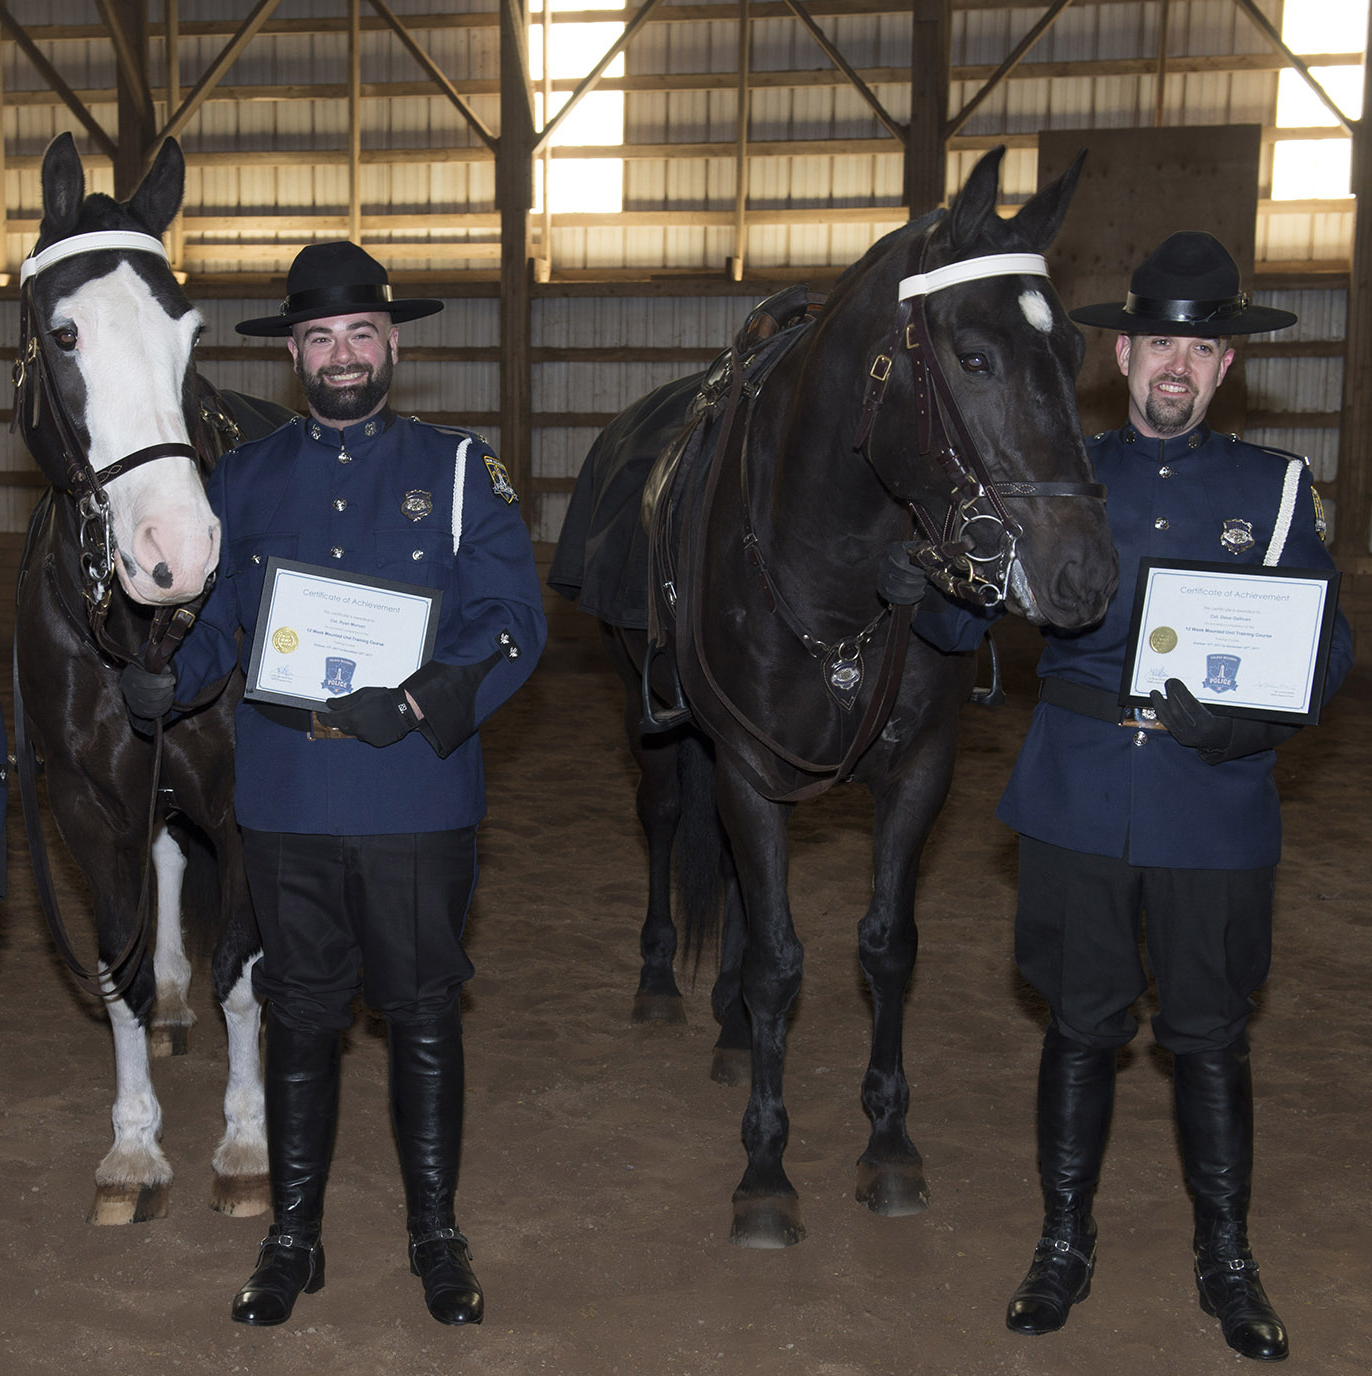 Photo of police horse, Duty Sergeant, with partner, Constable Ryan Morash and police horse, Valour, with partner, Constable David Gallivan